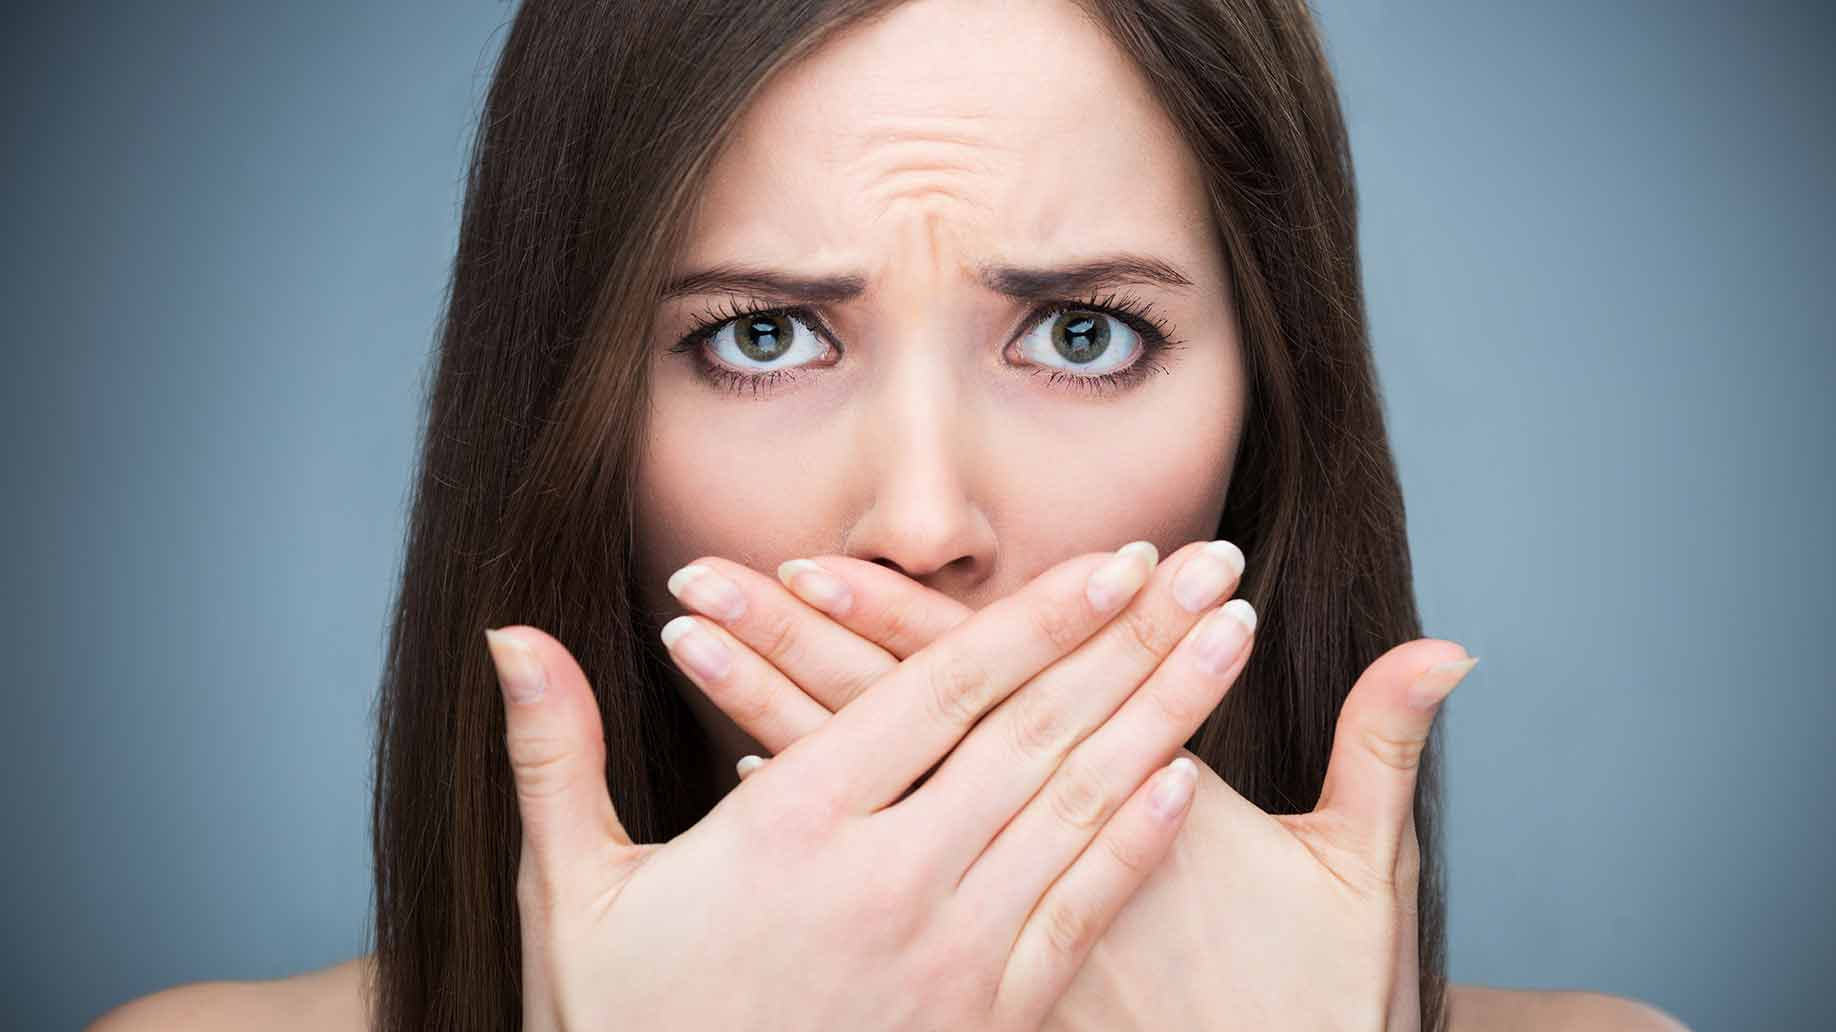 bad breath halitosis how to get rid of naturally remedies